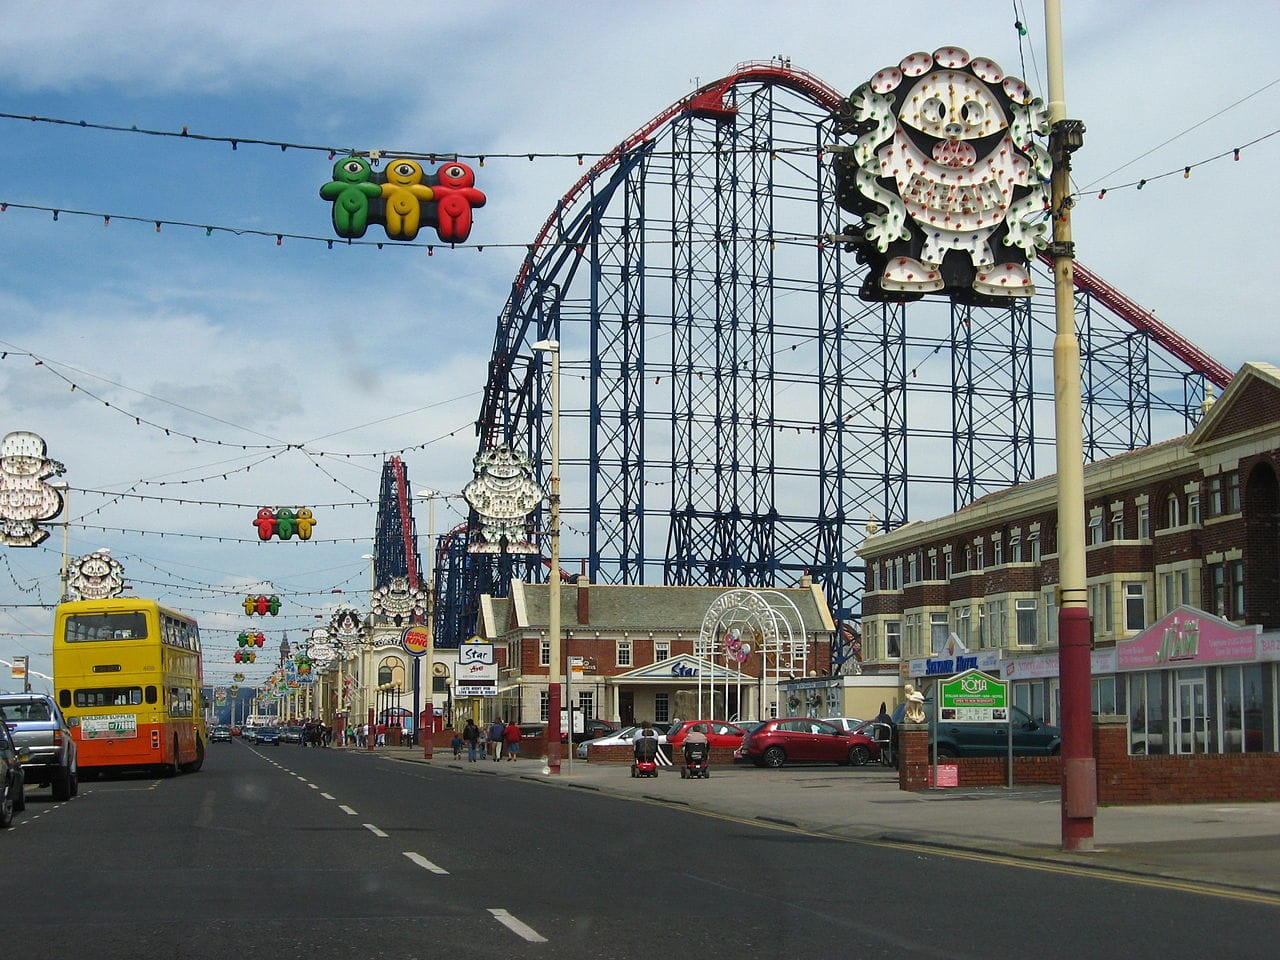 roller coaster when visiting Blackpool's Pleasure Beach